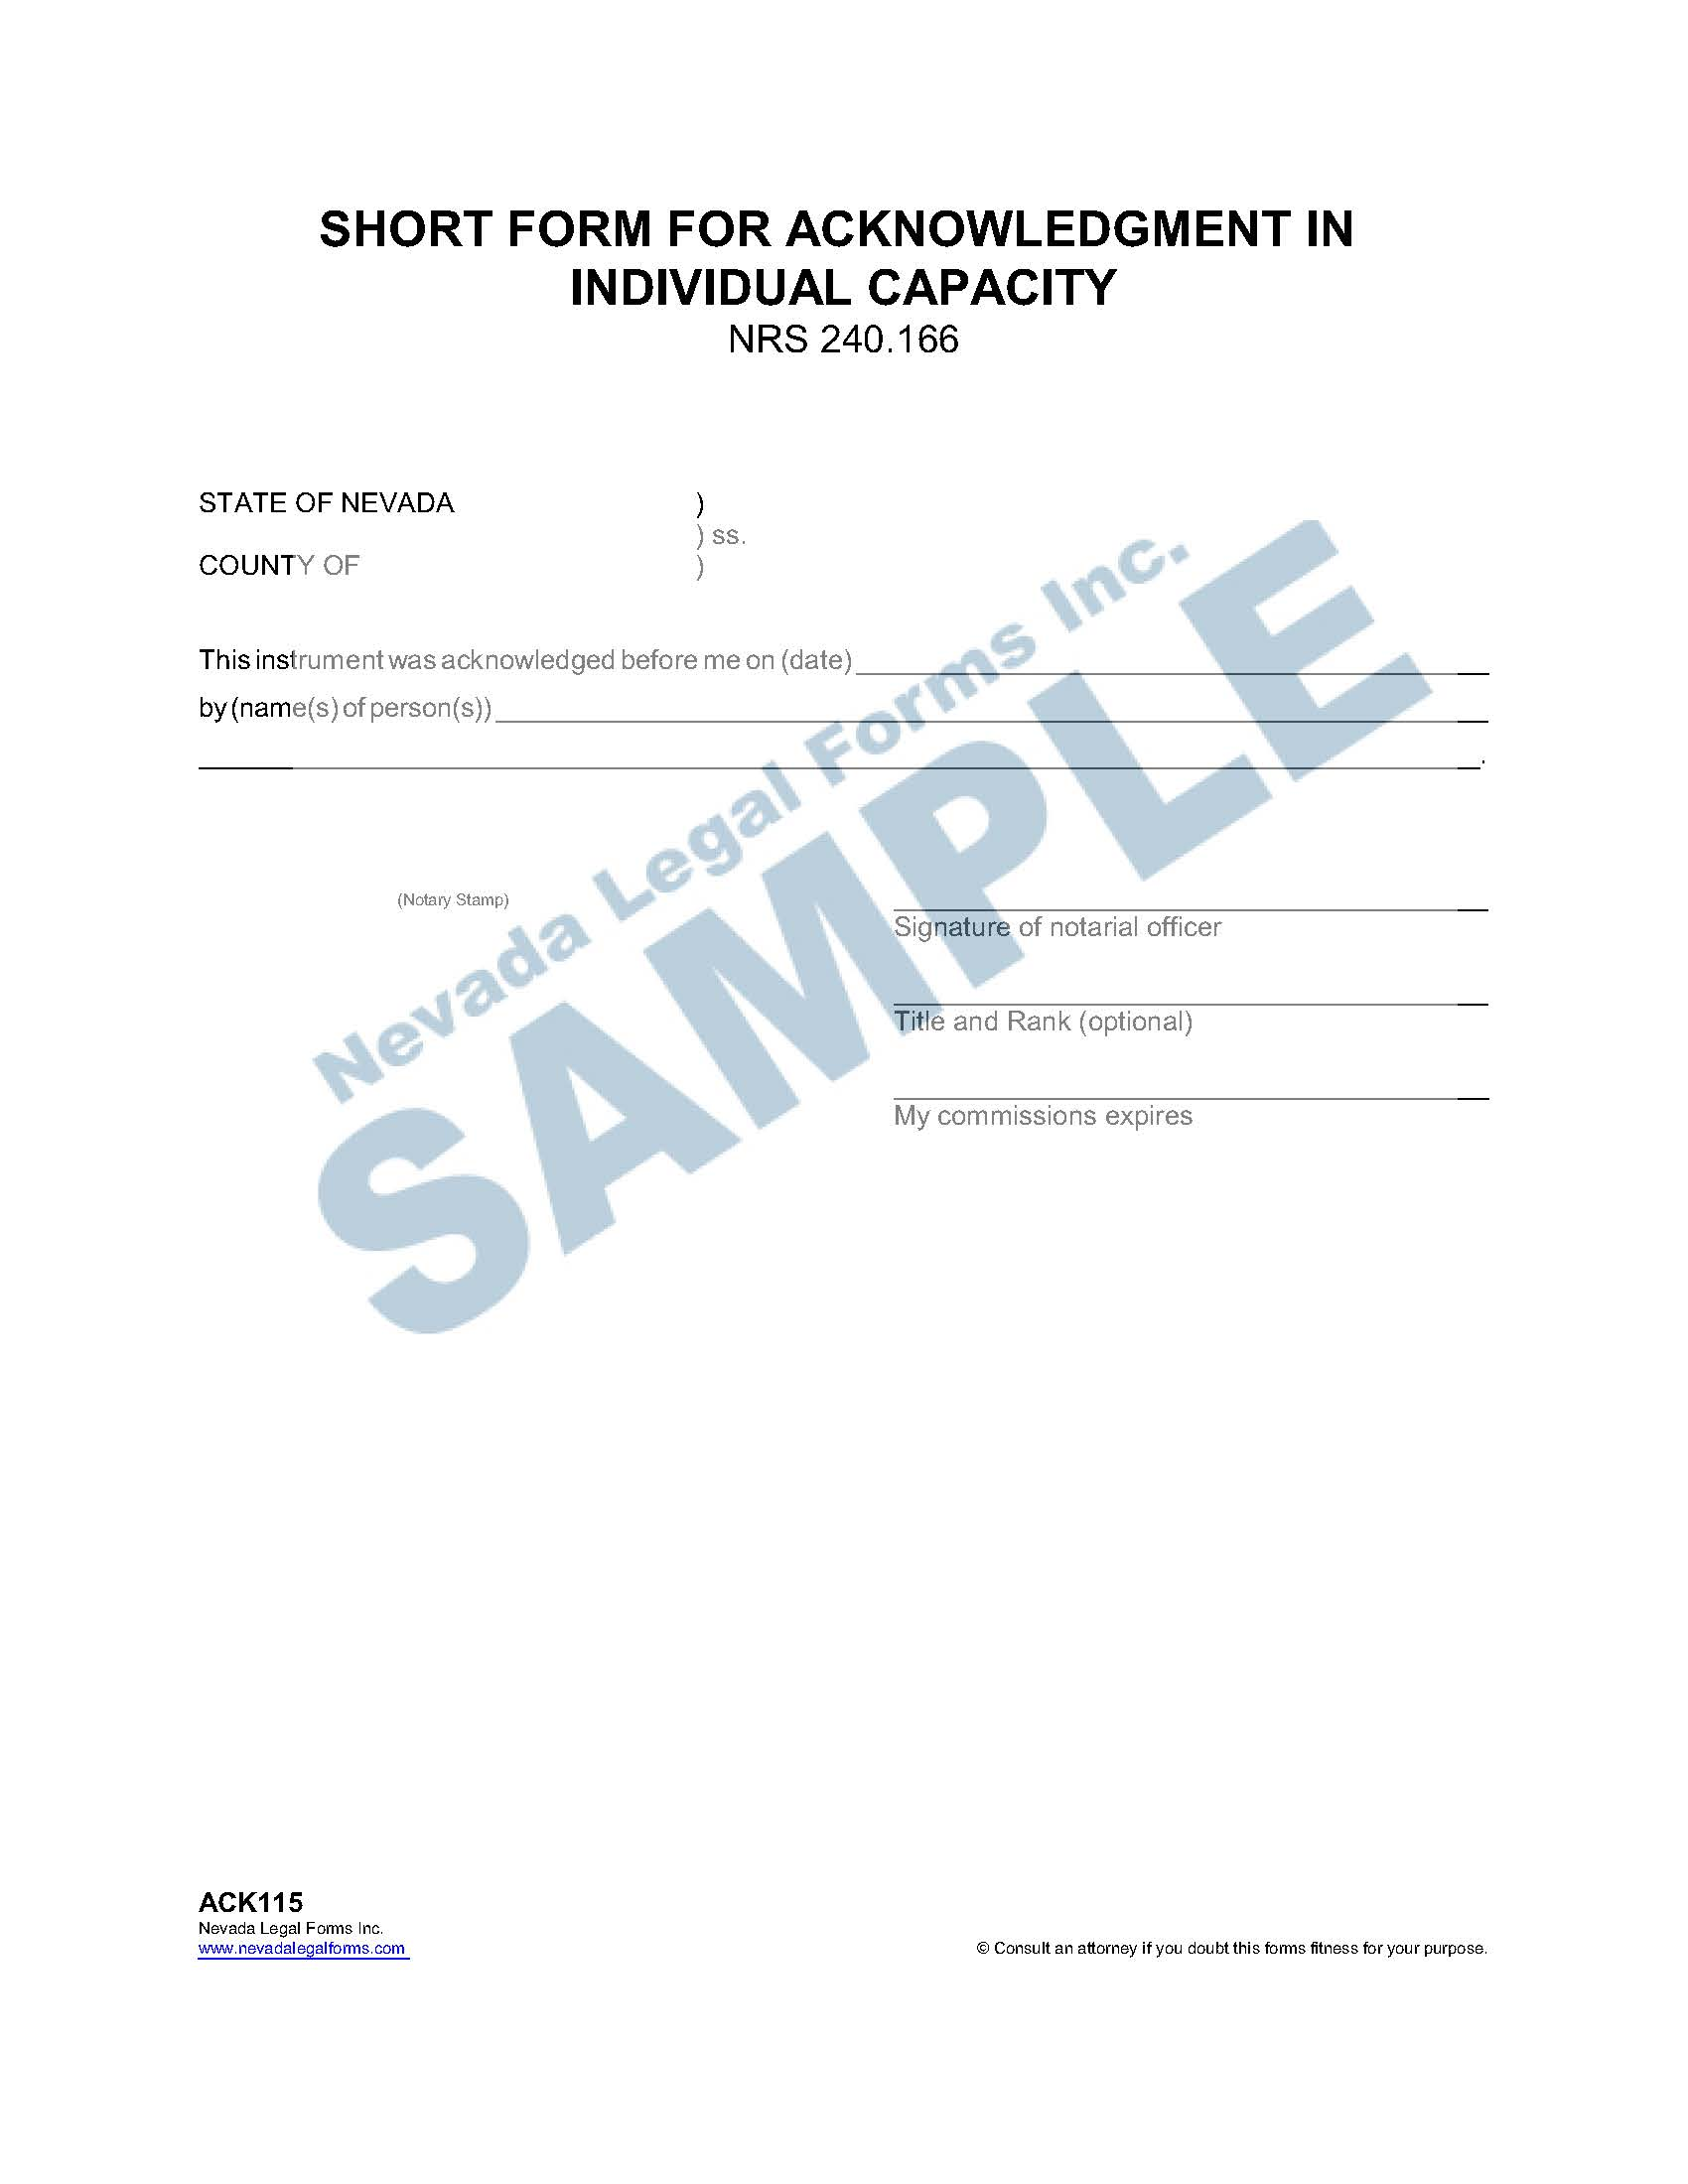 Short Form For Acknowledgment In Individual Capacity